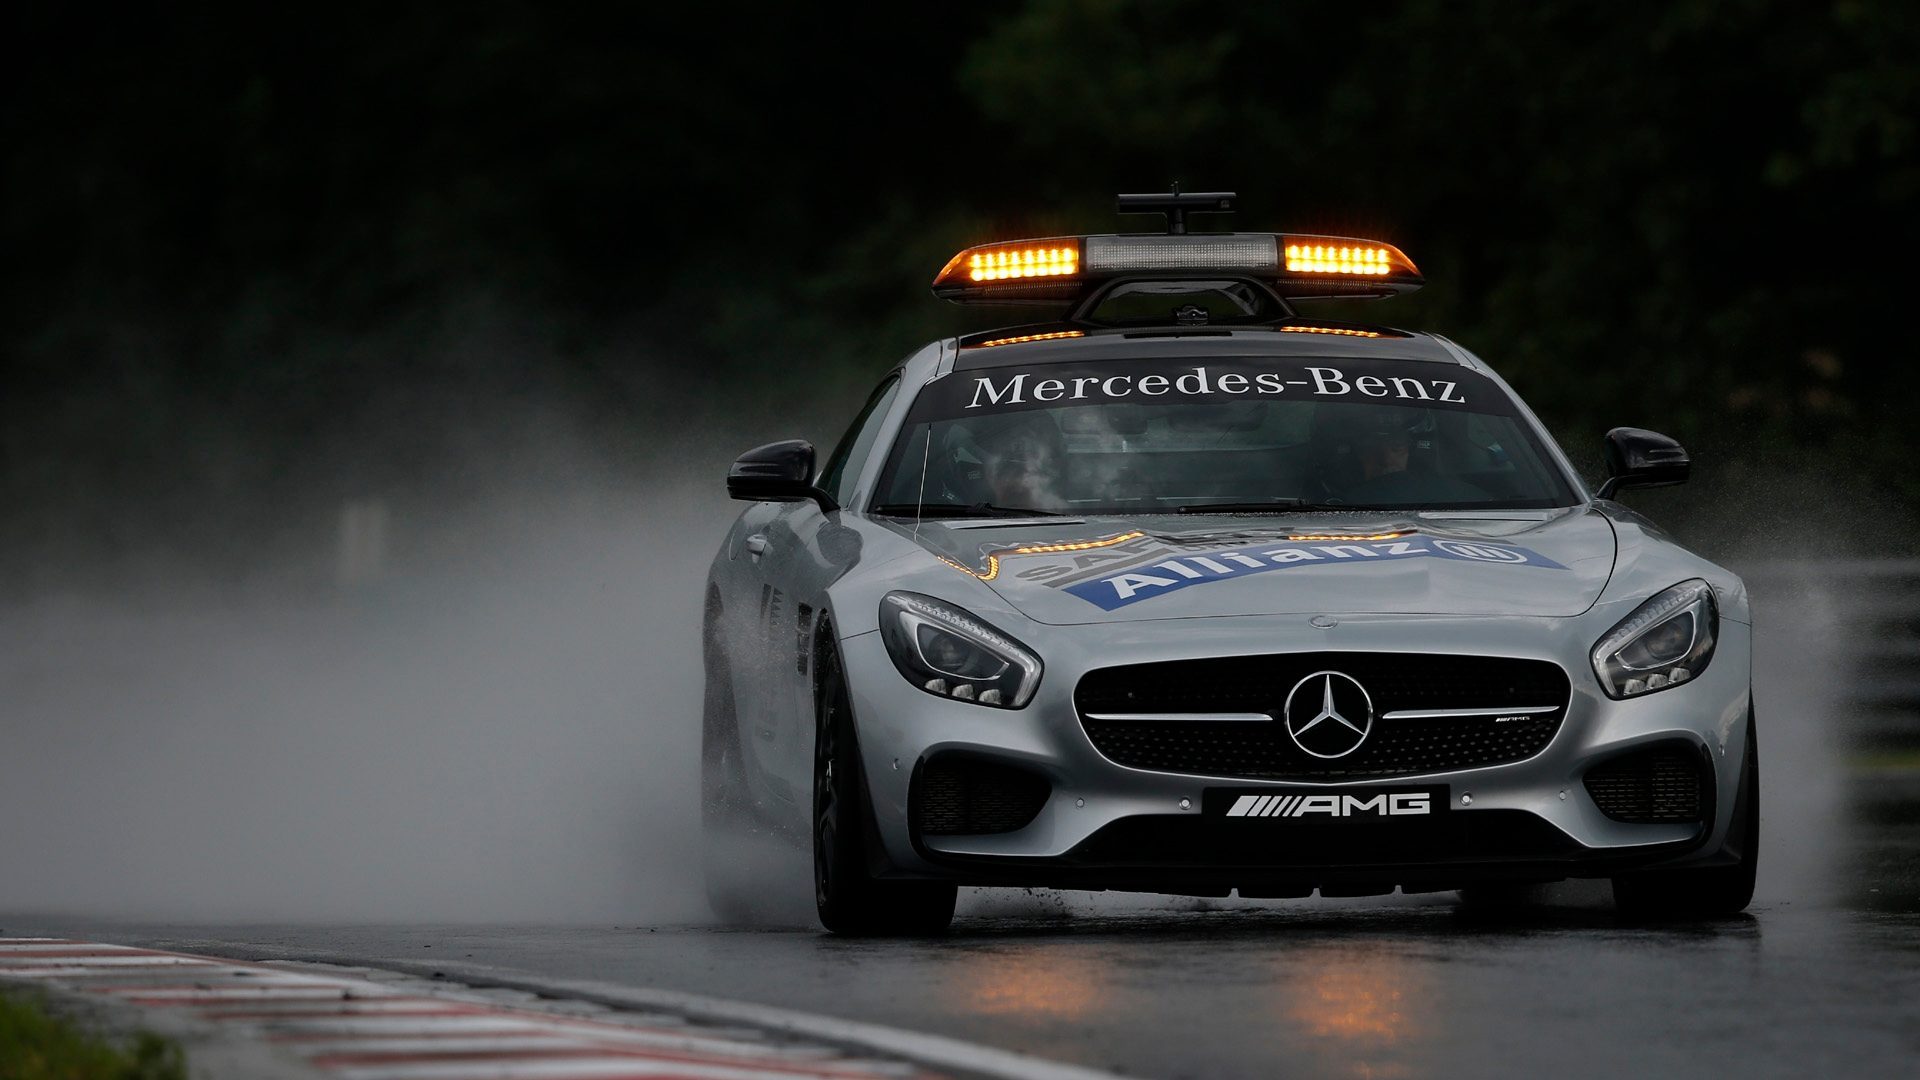 Formula 1 Planning To Get An Autonomous Safety Car In The Near Future Mercedesblog